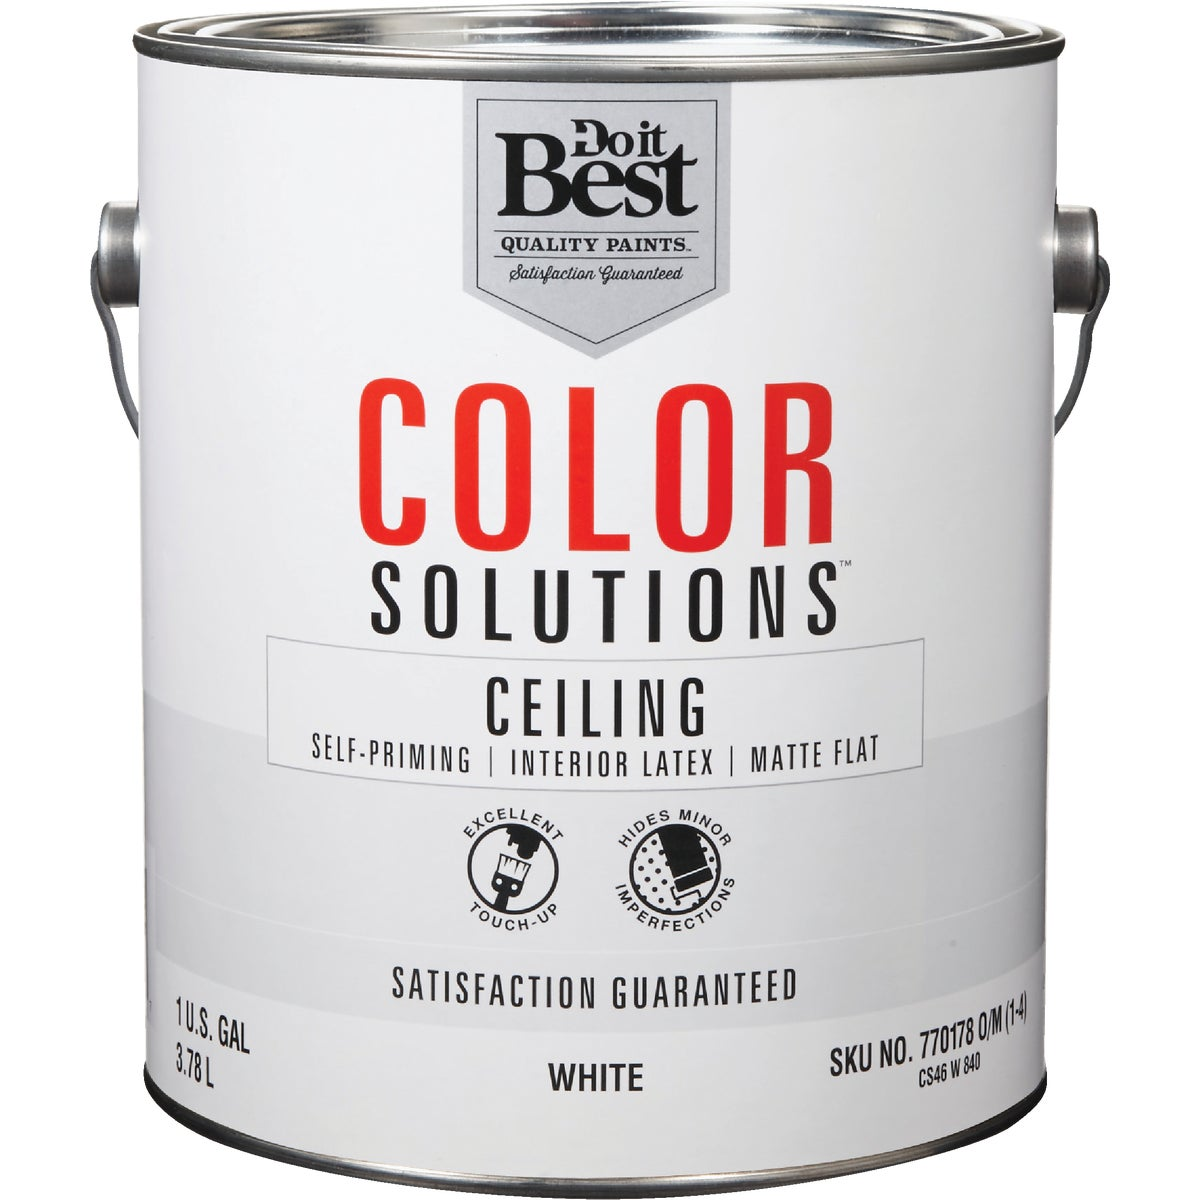 FLAT WHITE CEILING PAINT - CS46W0840-16 by Do it Best